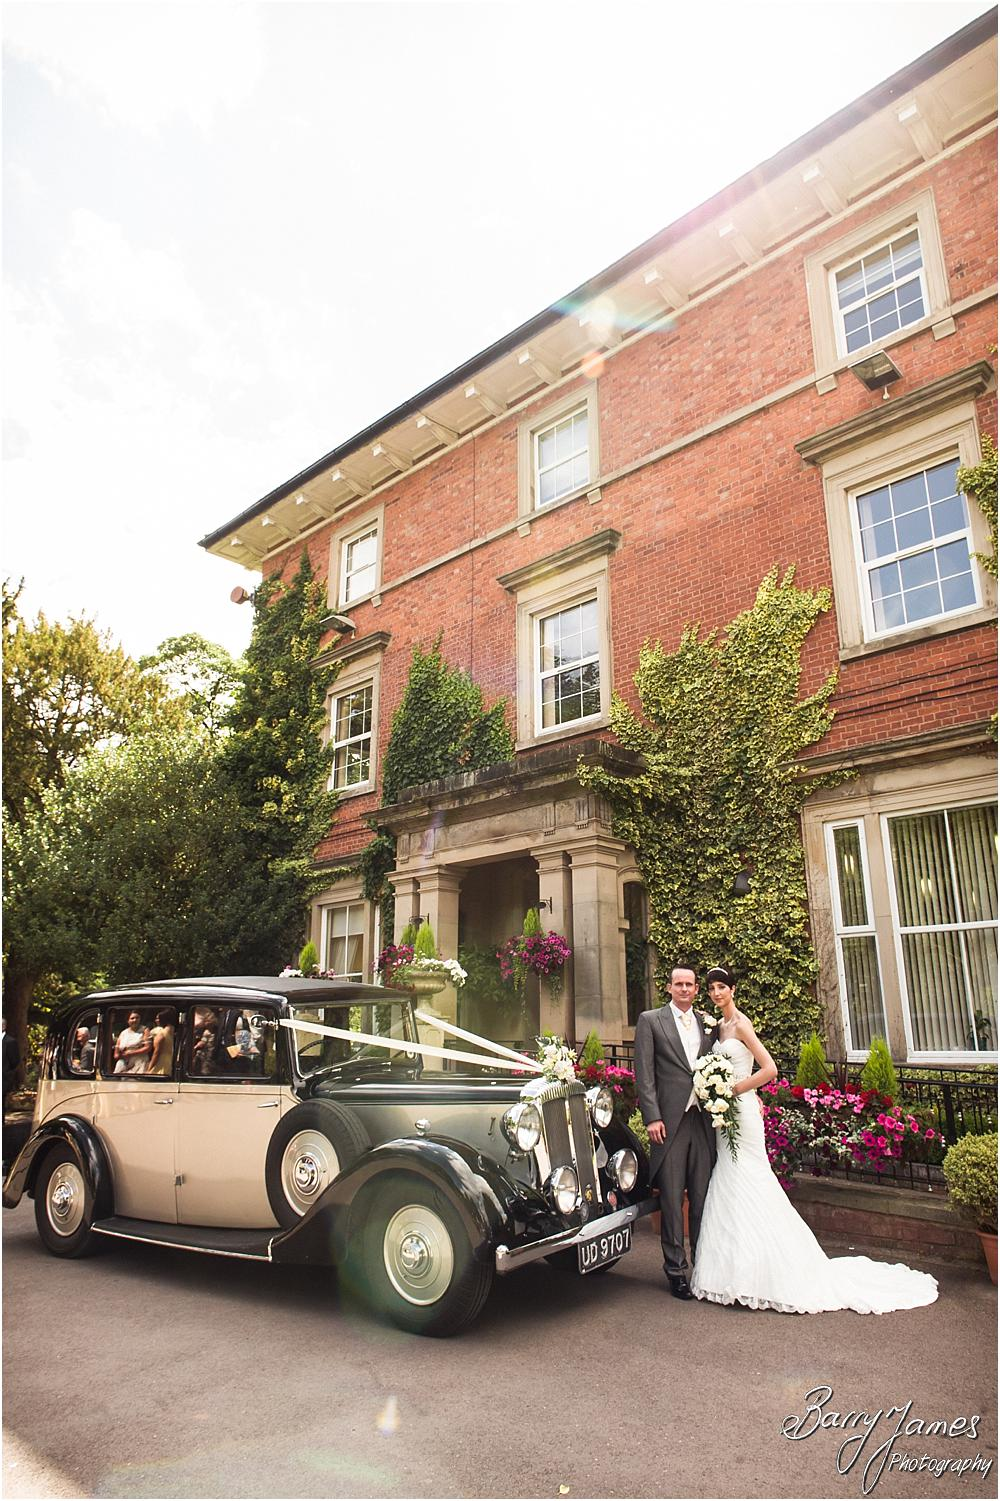 Stunning wedding cars for the wedding at Rodbaston Hall in Penkridge by Walsall Wedding Photographer Barry James